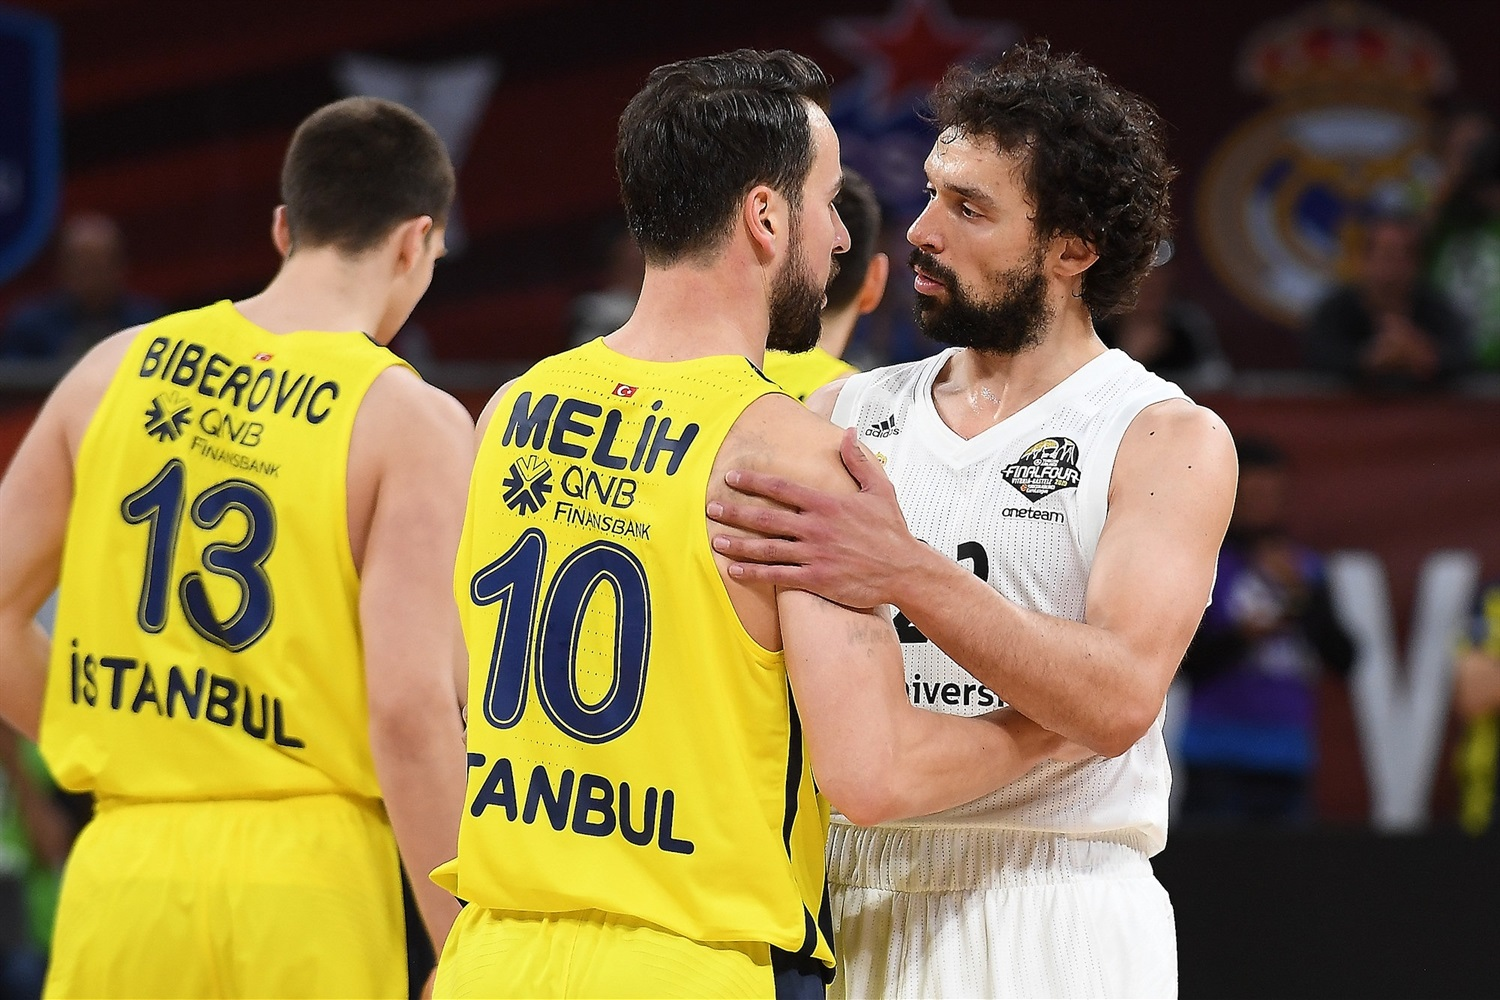 Sergio Llull 2 Real Madrid - Final Four Vitoria-Gasteiz 2019 - EB18